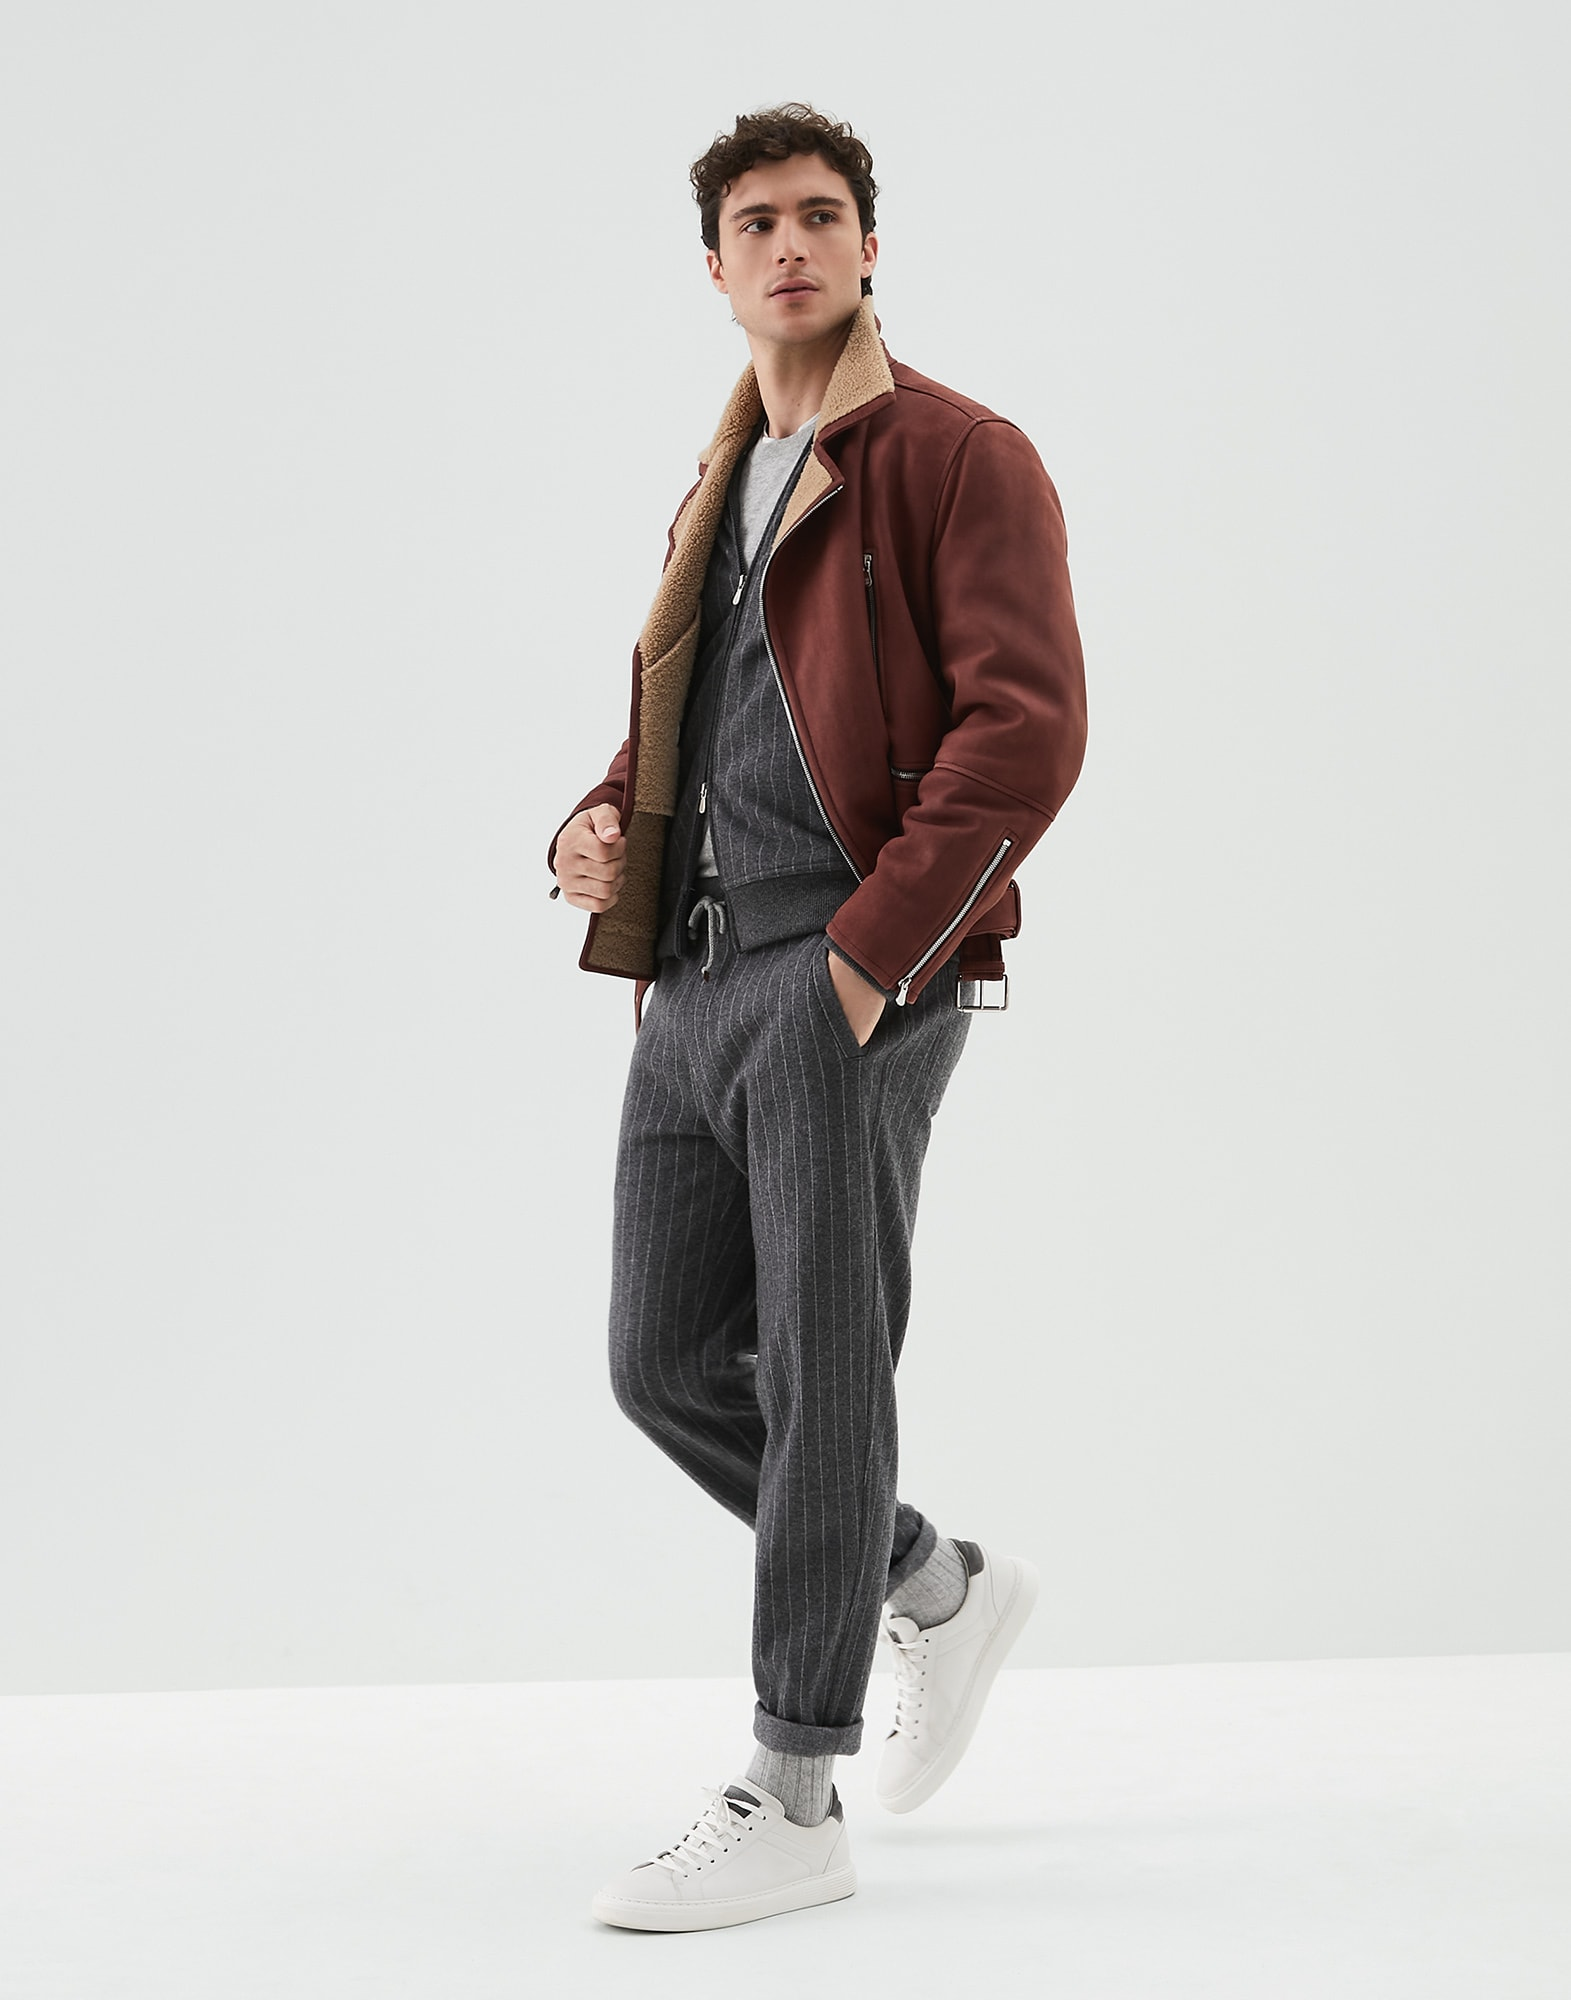 Leather Amaranth Red Man 4 - Brunello Cucinelli